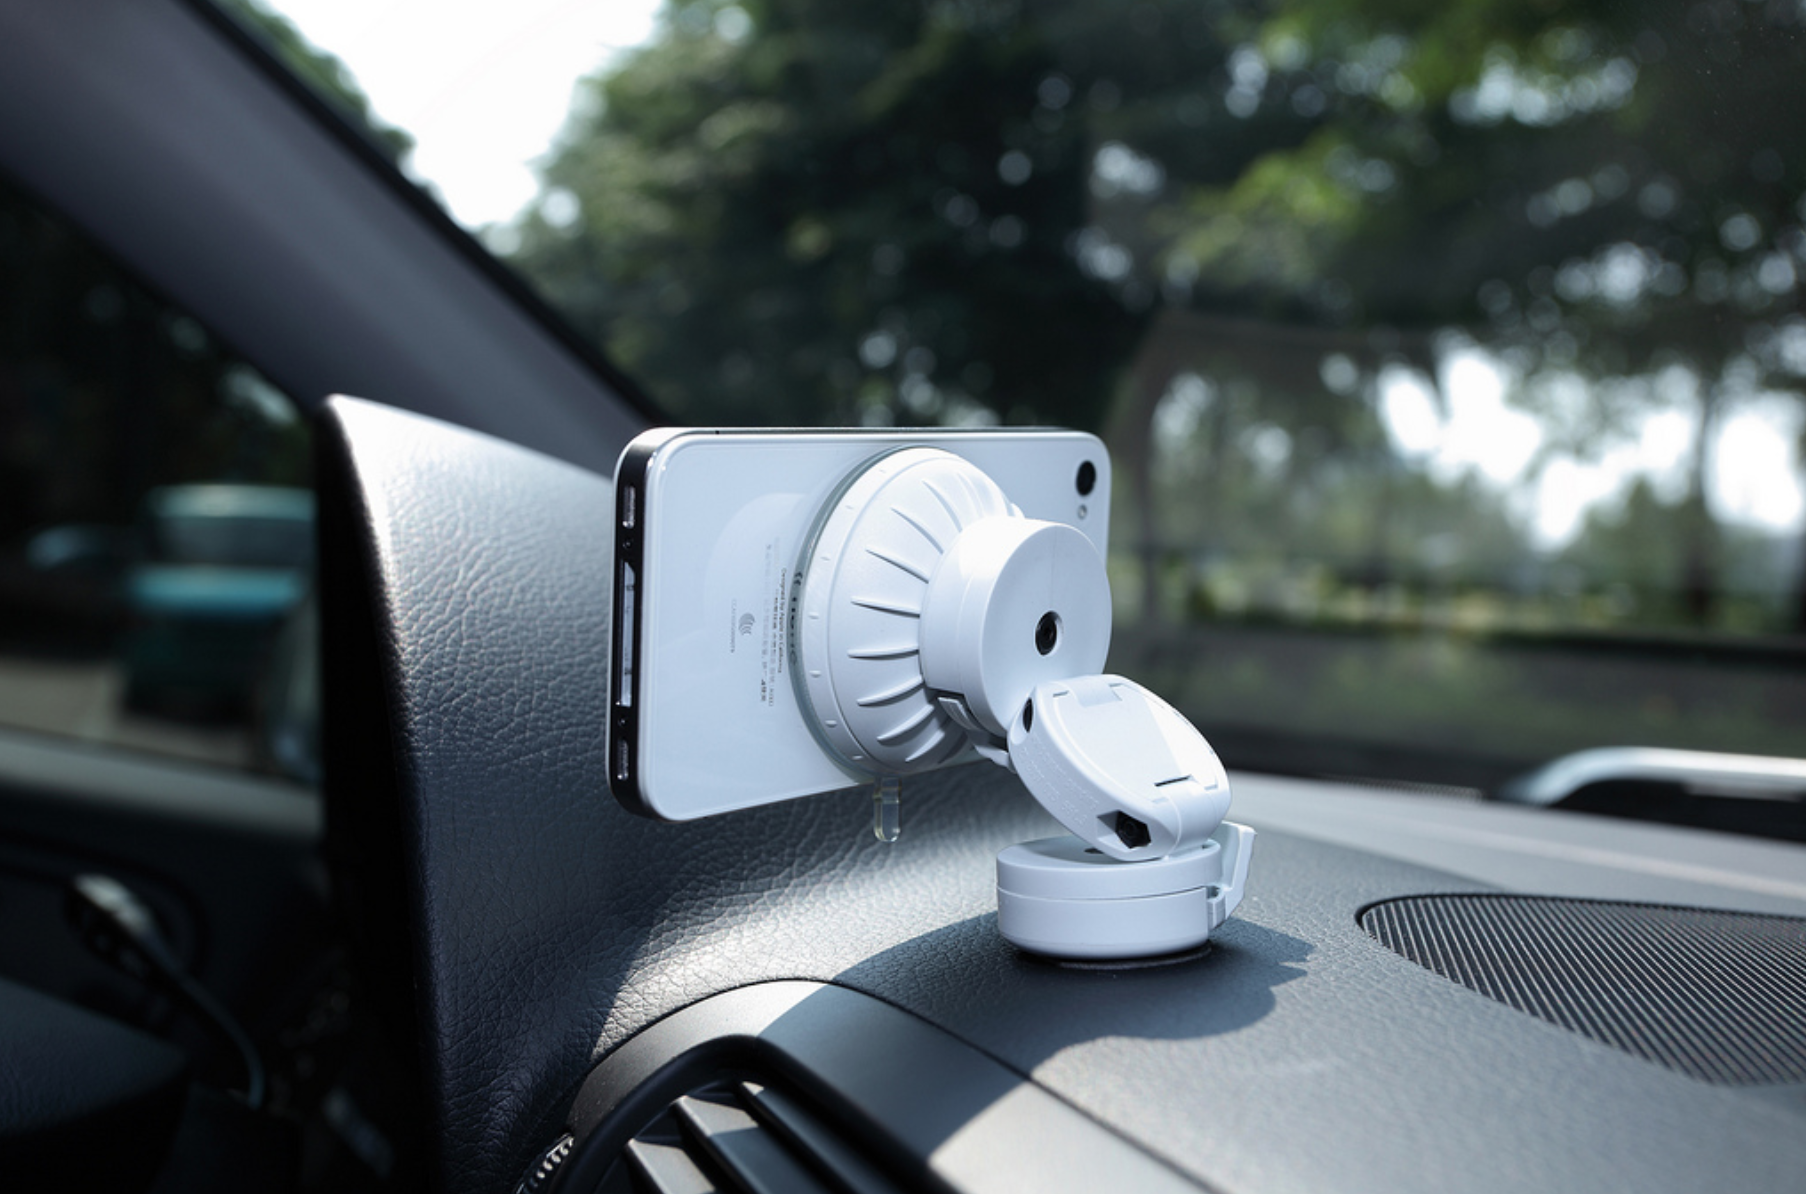 1d54890df47b0f Just Mobile Xtand Go car mount for iPhone (mini review) - 9to5Mac